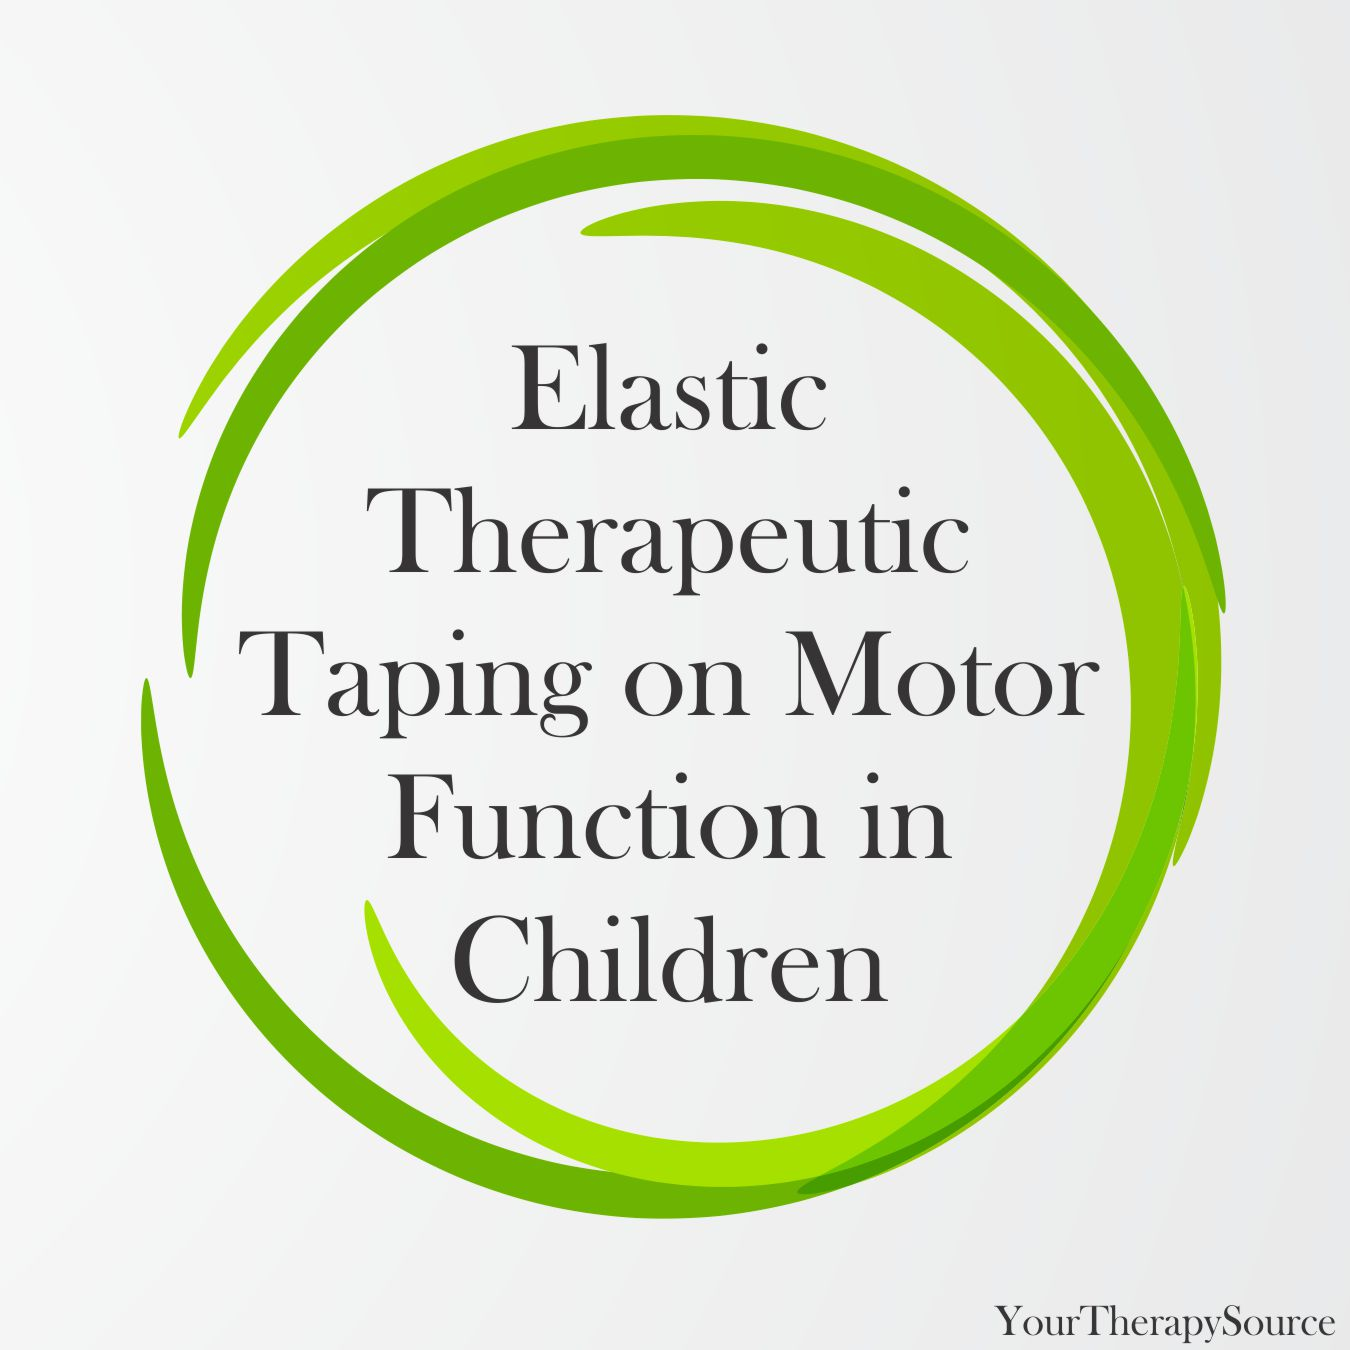 Elastic Therapeutic Taping on Motor Function in Children